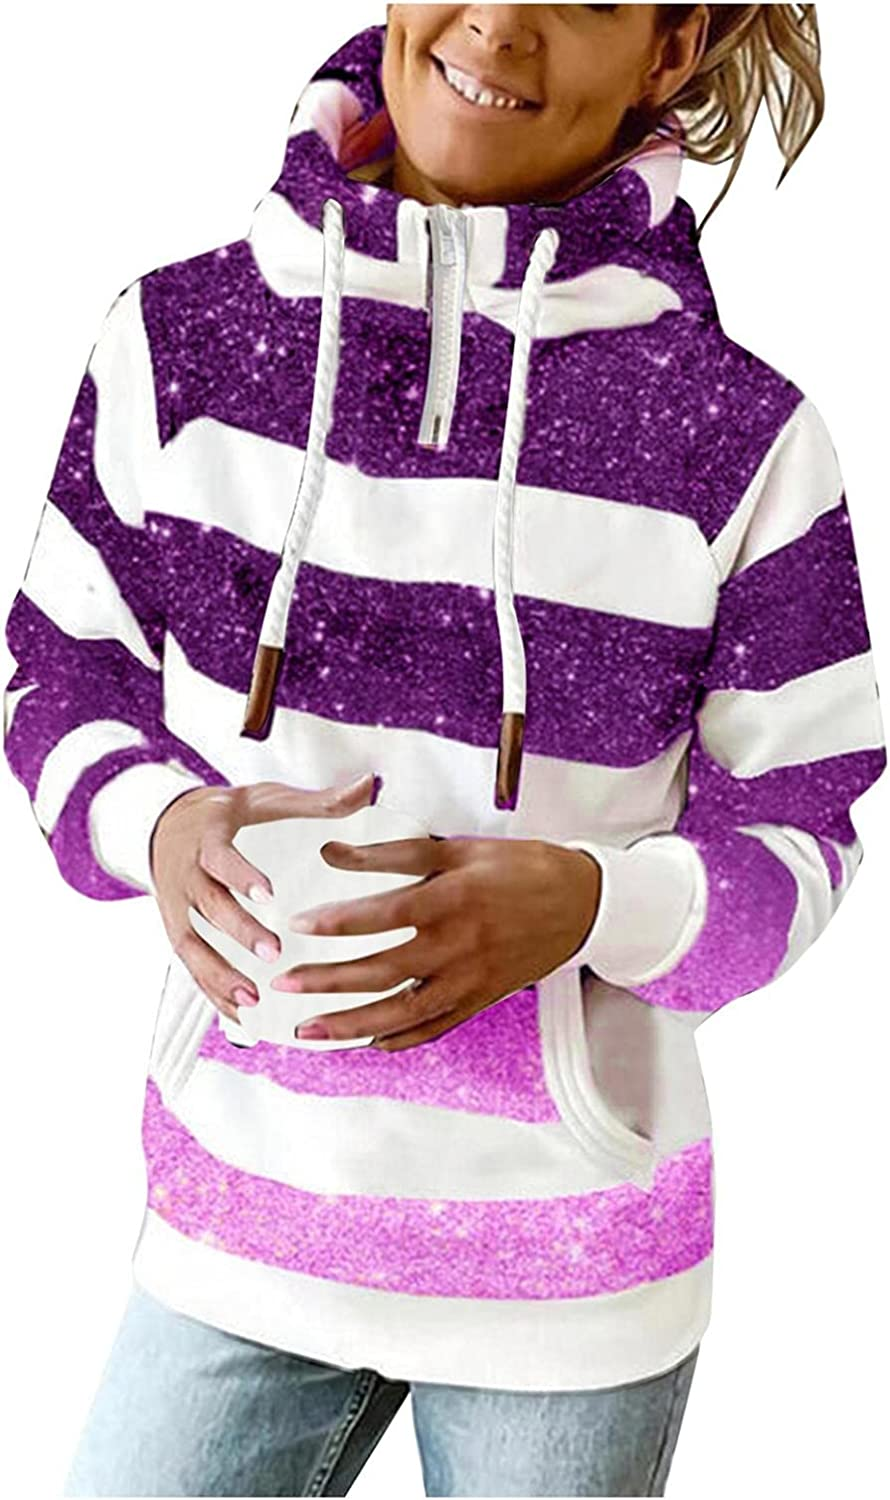 Hoodies for Women,Women's Drawstring Hooded Casual Striped Tie Dye Color Lightweight Tops Comfort Pullover Sweatshirts